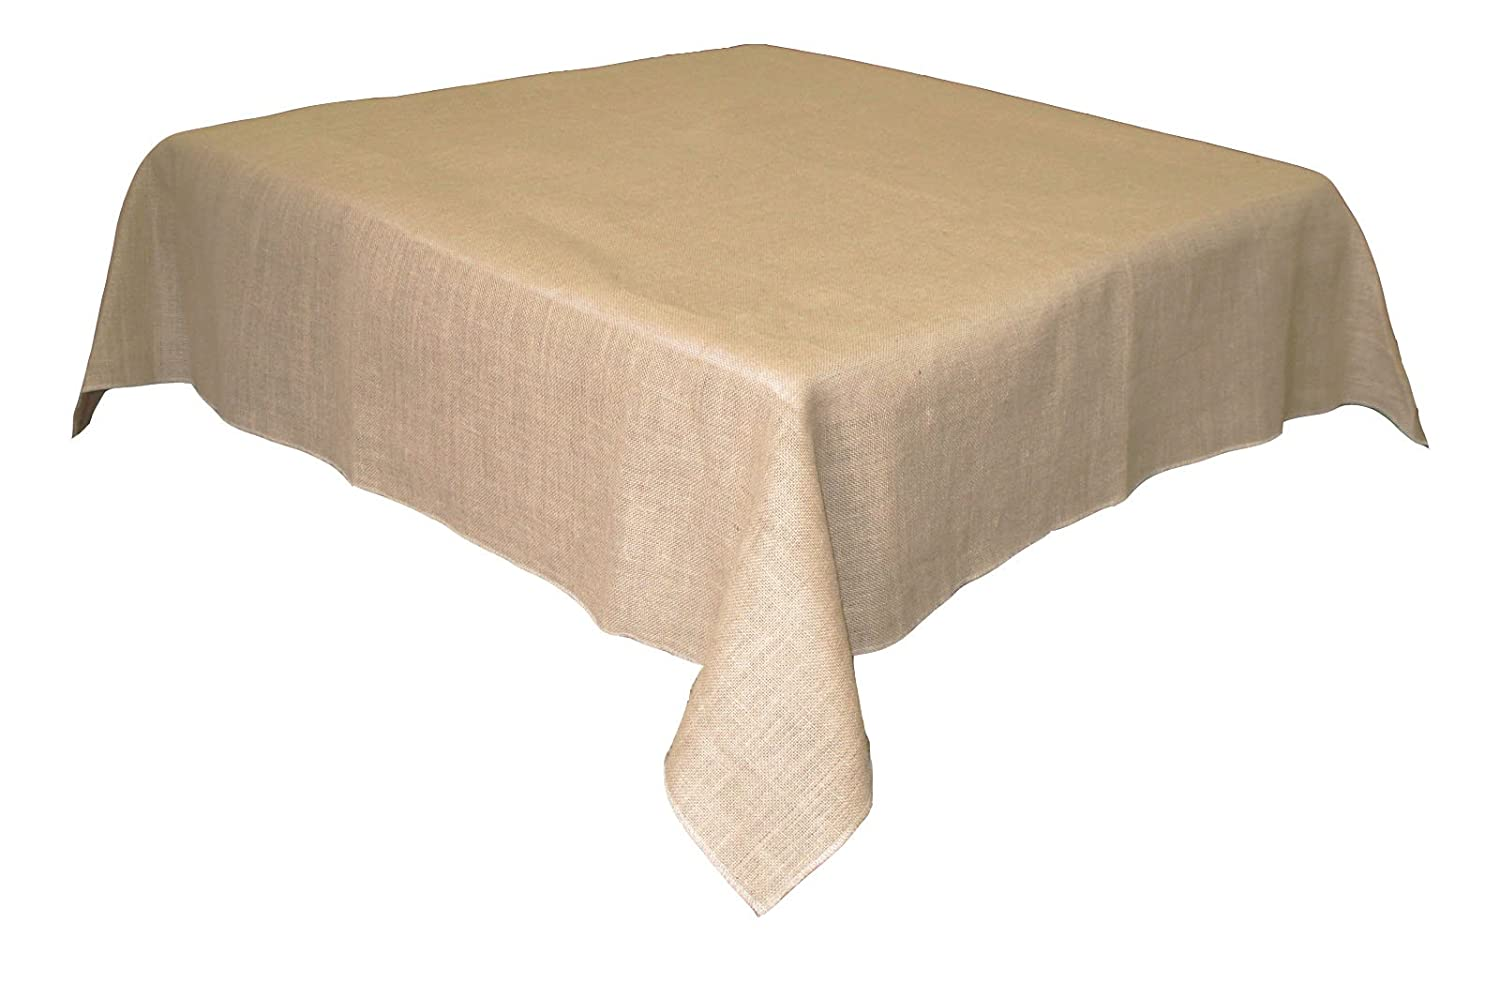 amazon com la linen natural burlap square tablecloth 52 by 52 inch rh amazon com